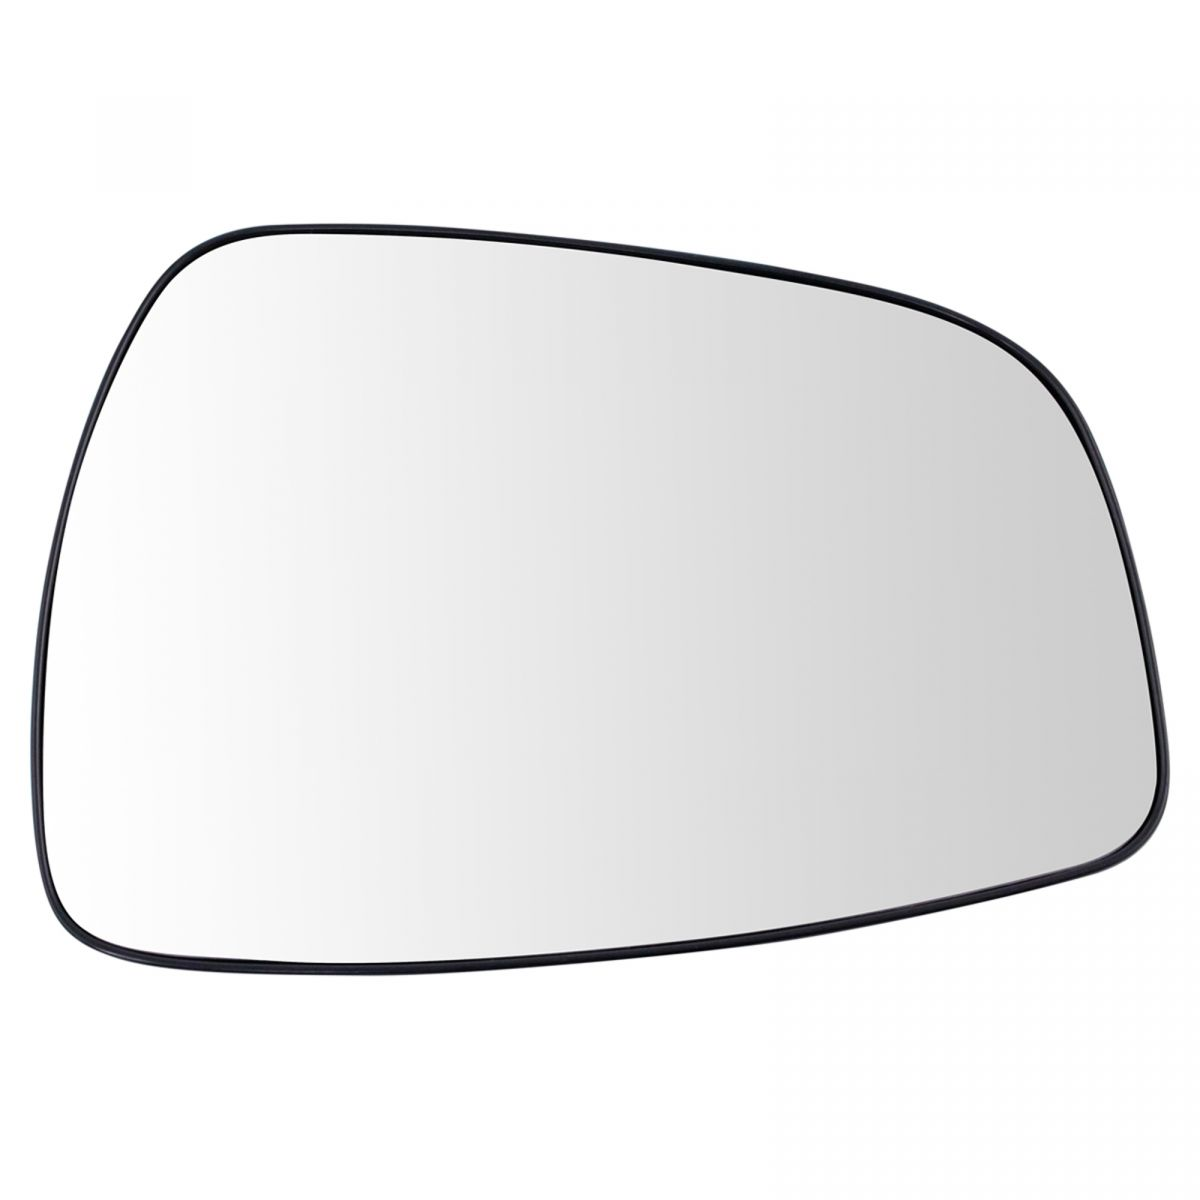 LEFT PASSENGER SIDE MIRROR GLASS FOR HYUNDAI ACCENT 2011-2017